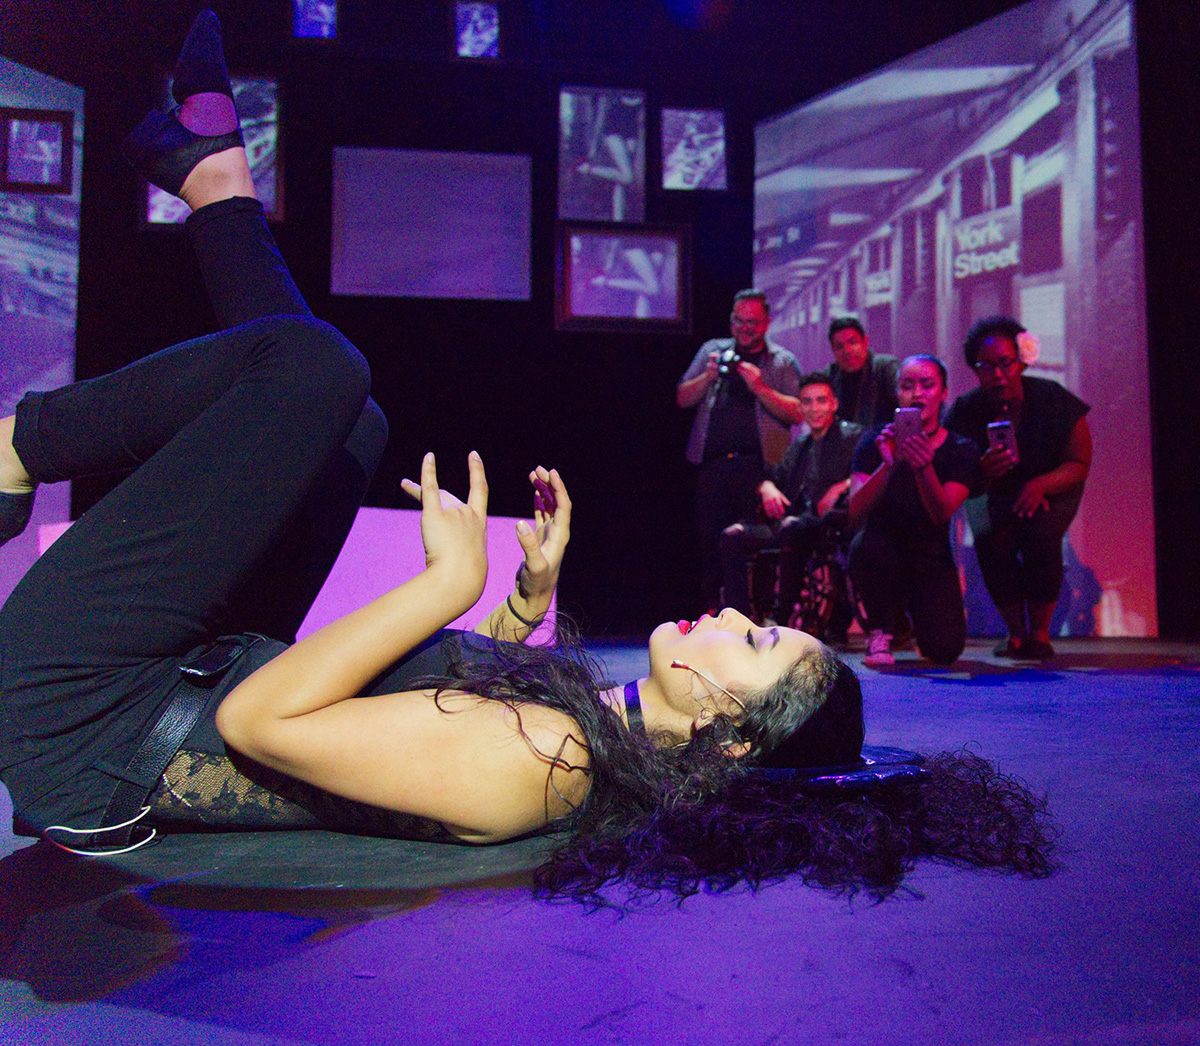 Floor show: Sabrina Lopez and cast in 'Immaculate Deception.'